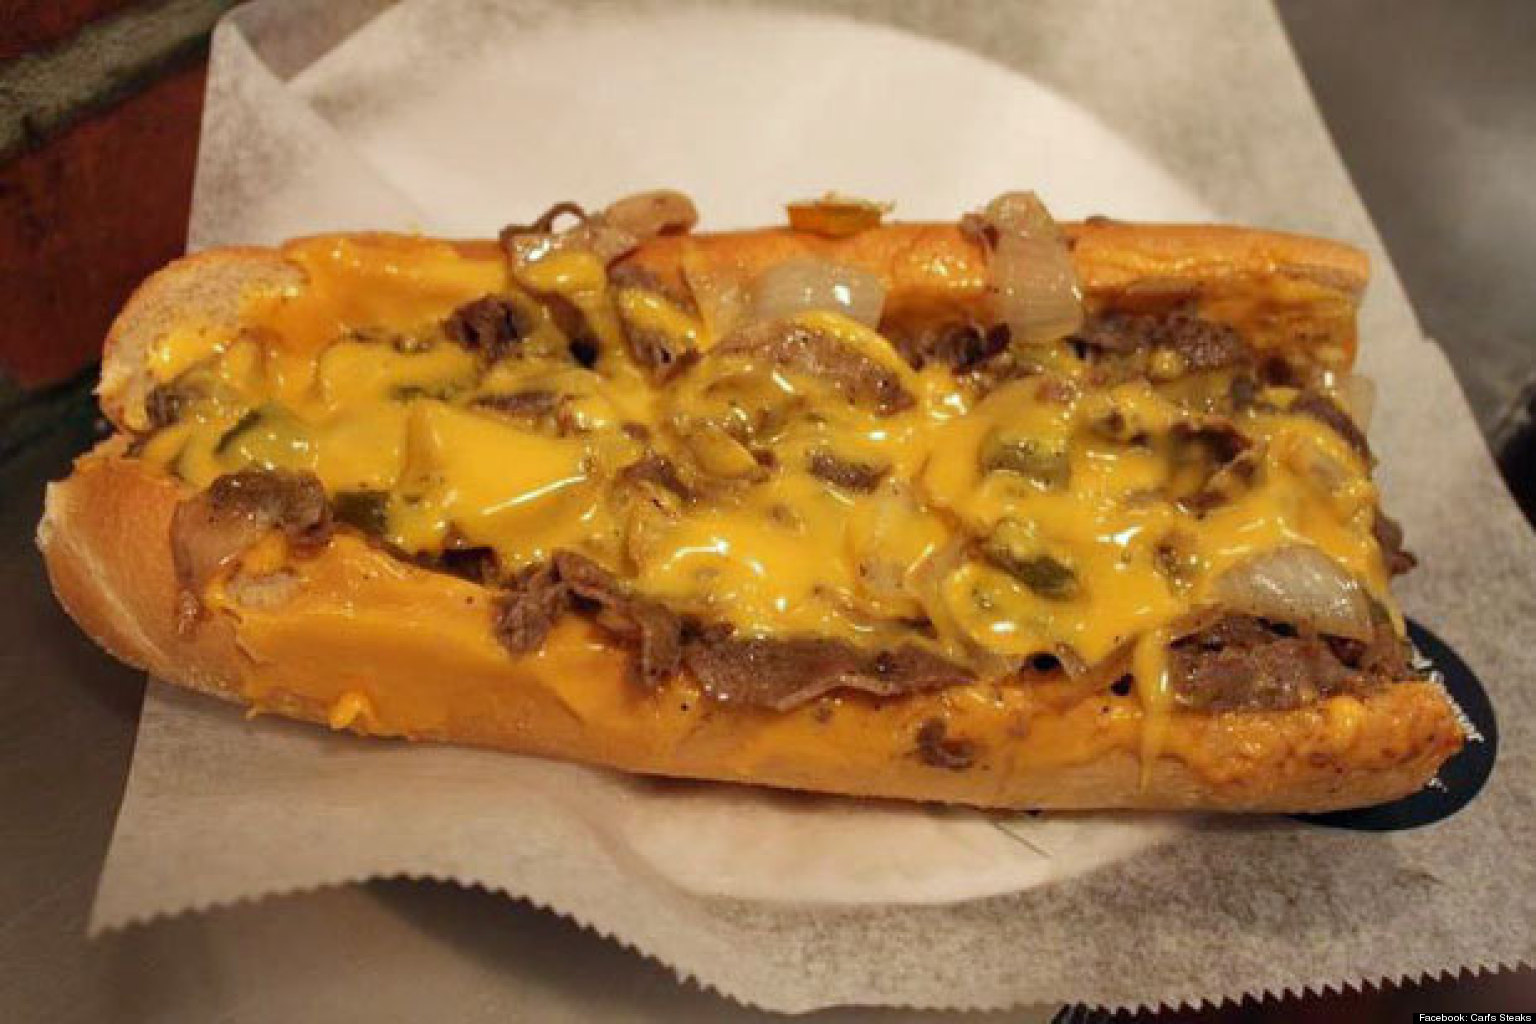 Best Cheesesteaks Outside Of Philly | The Daily Meal